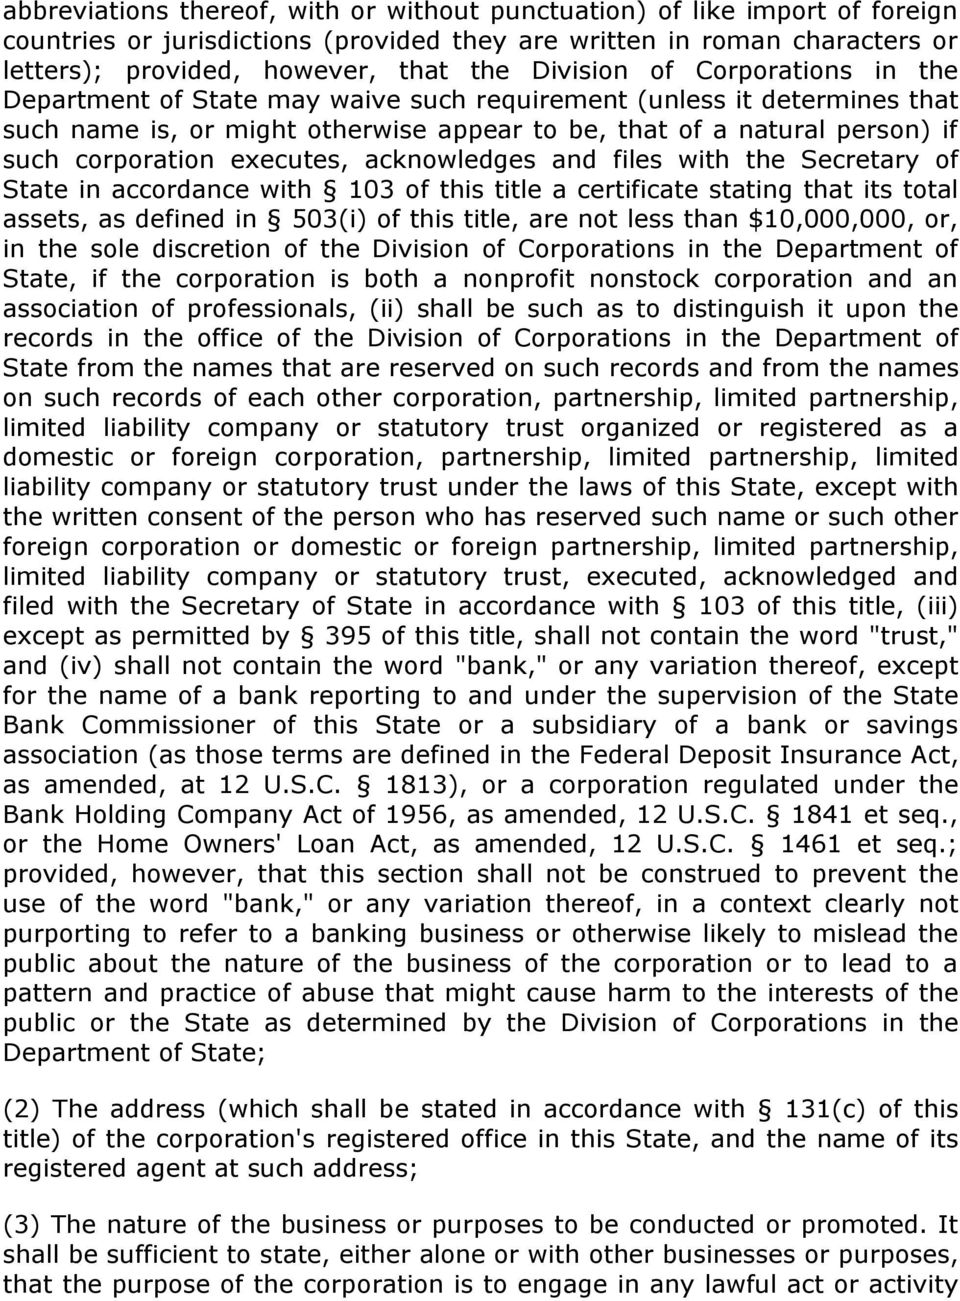 executes, acknowledges and files with the Secretary of State in accordance with 103 of this title a certificate stating that its total assets, as defined in 503(i) of this title, are not less than